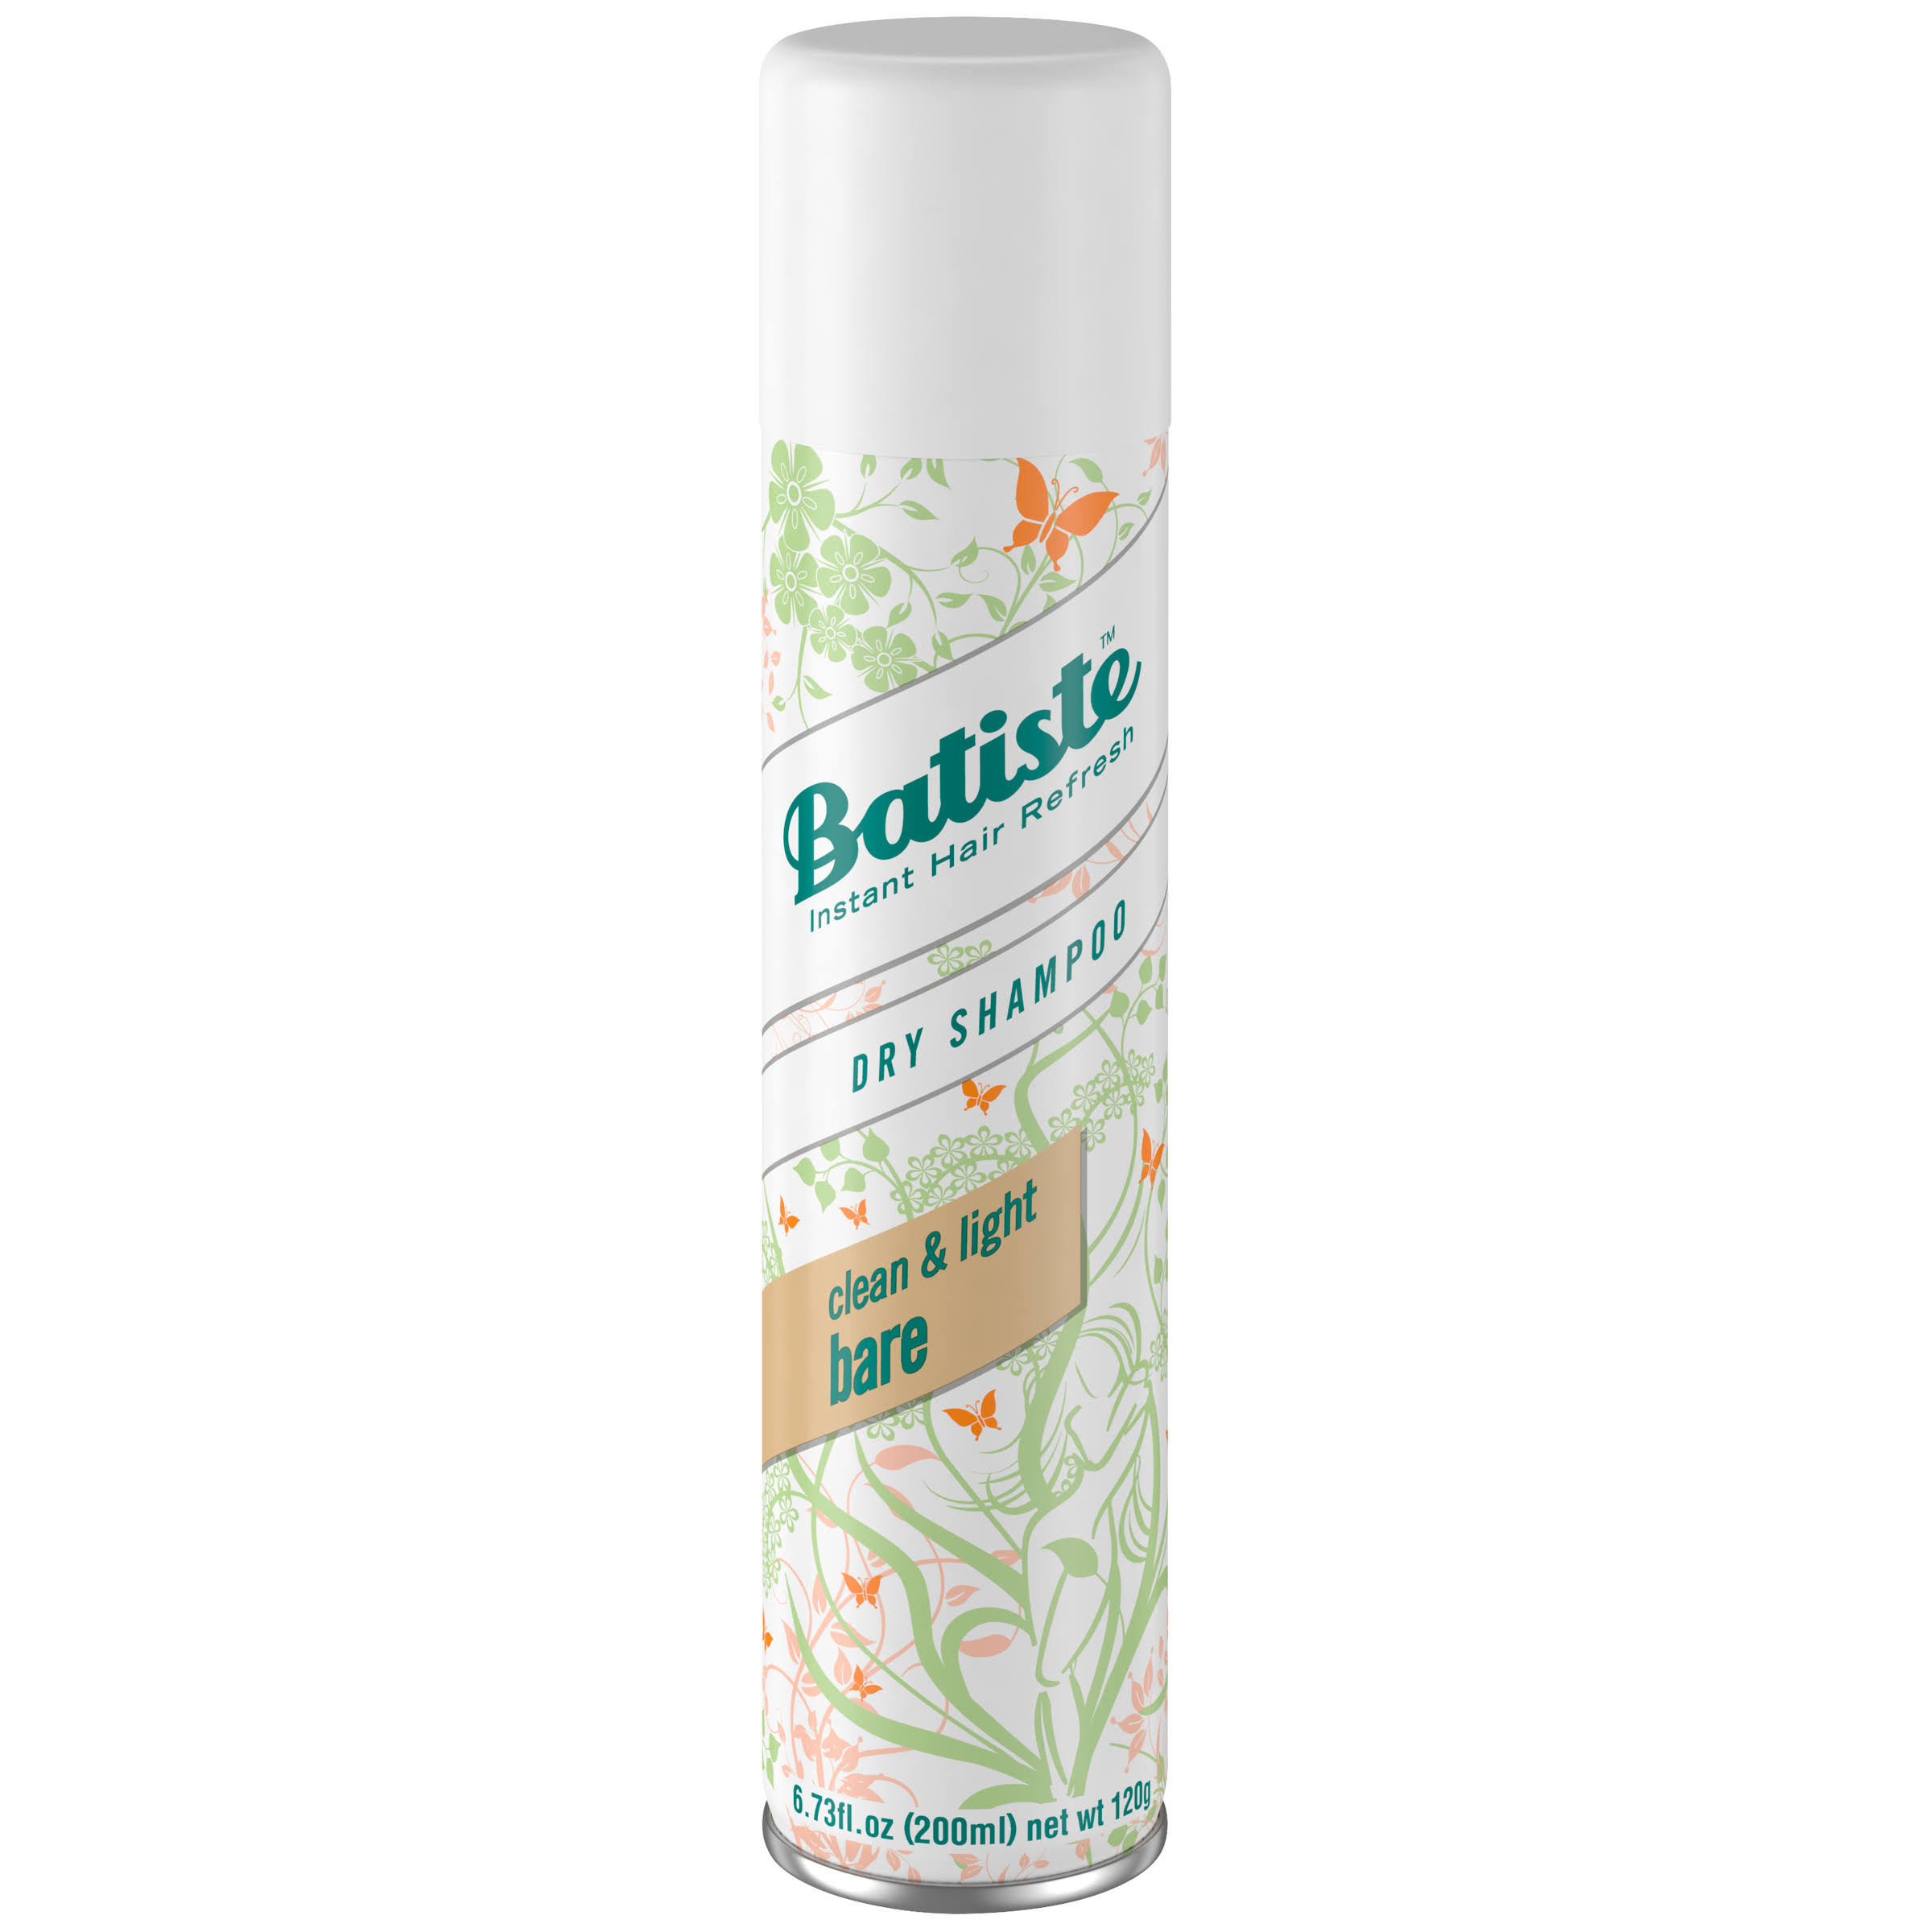 Batiste Instant Hair Refresh Dry Shampoo - Natural & Light Bare, 200ml